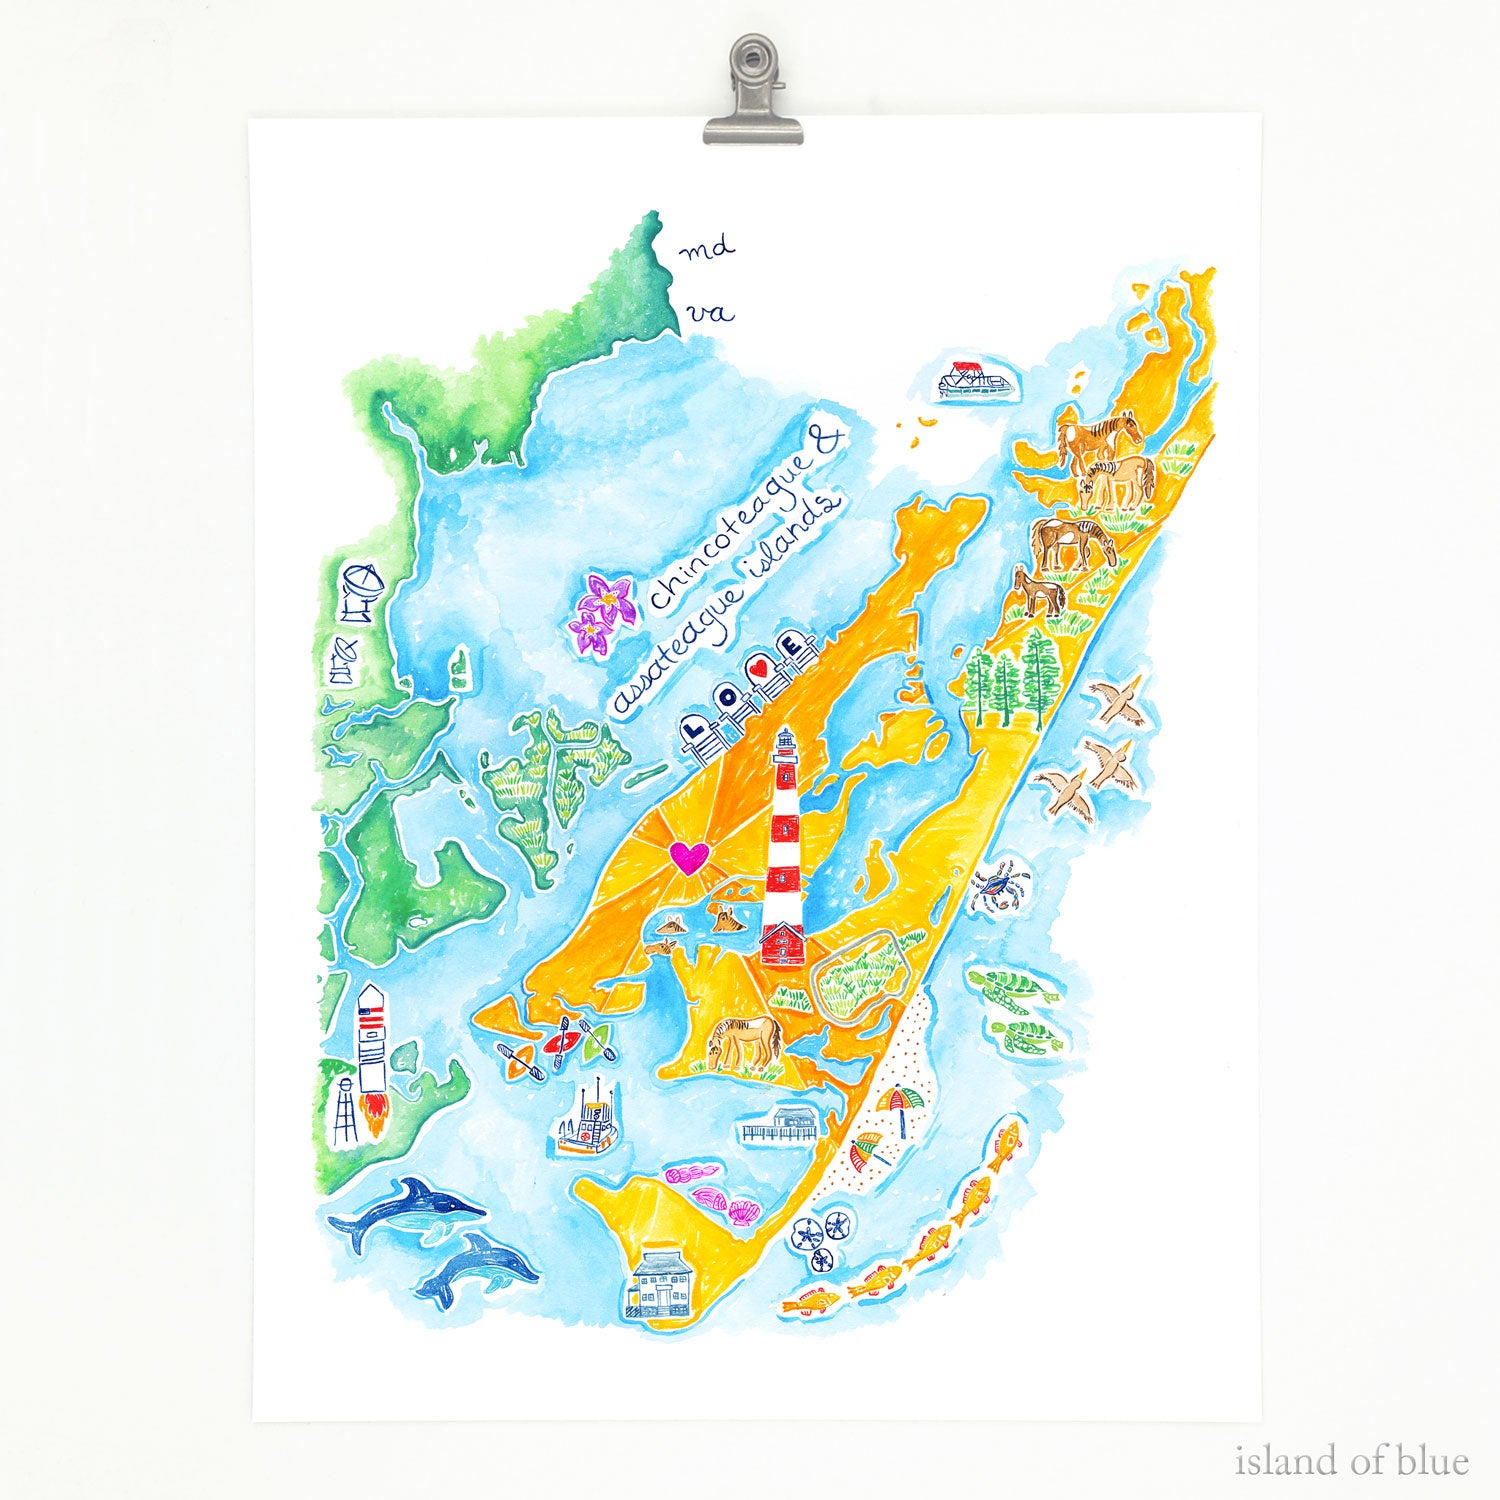 Chincoteague map, featuring Assateague Island, too.